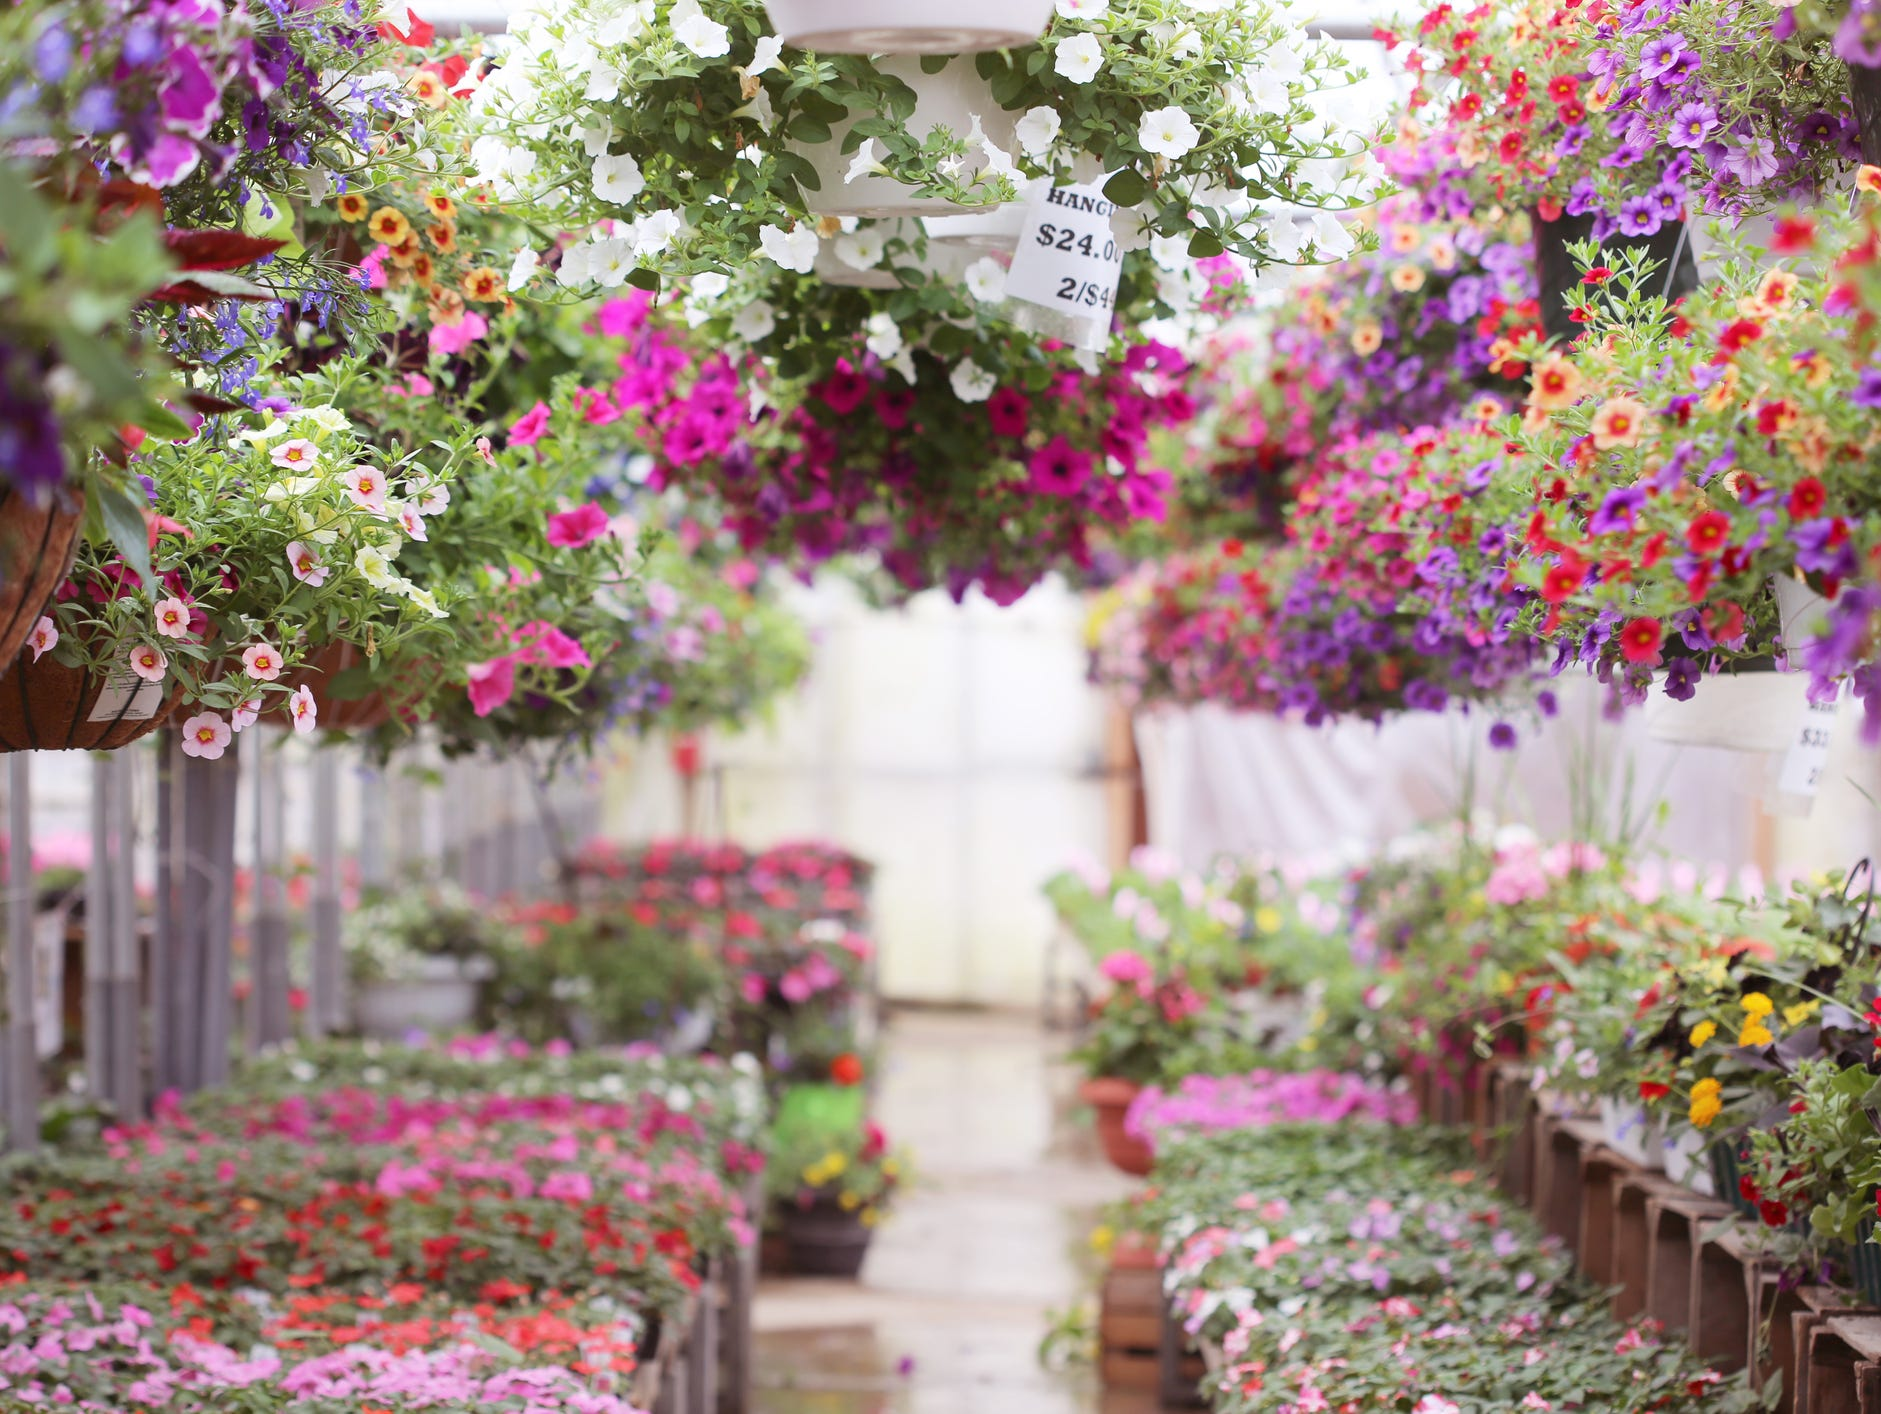 You could win a May Flower Shopping Spree! Enter 5/1-5/29.